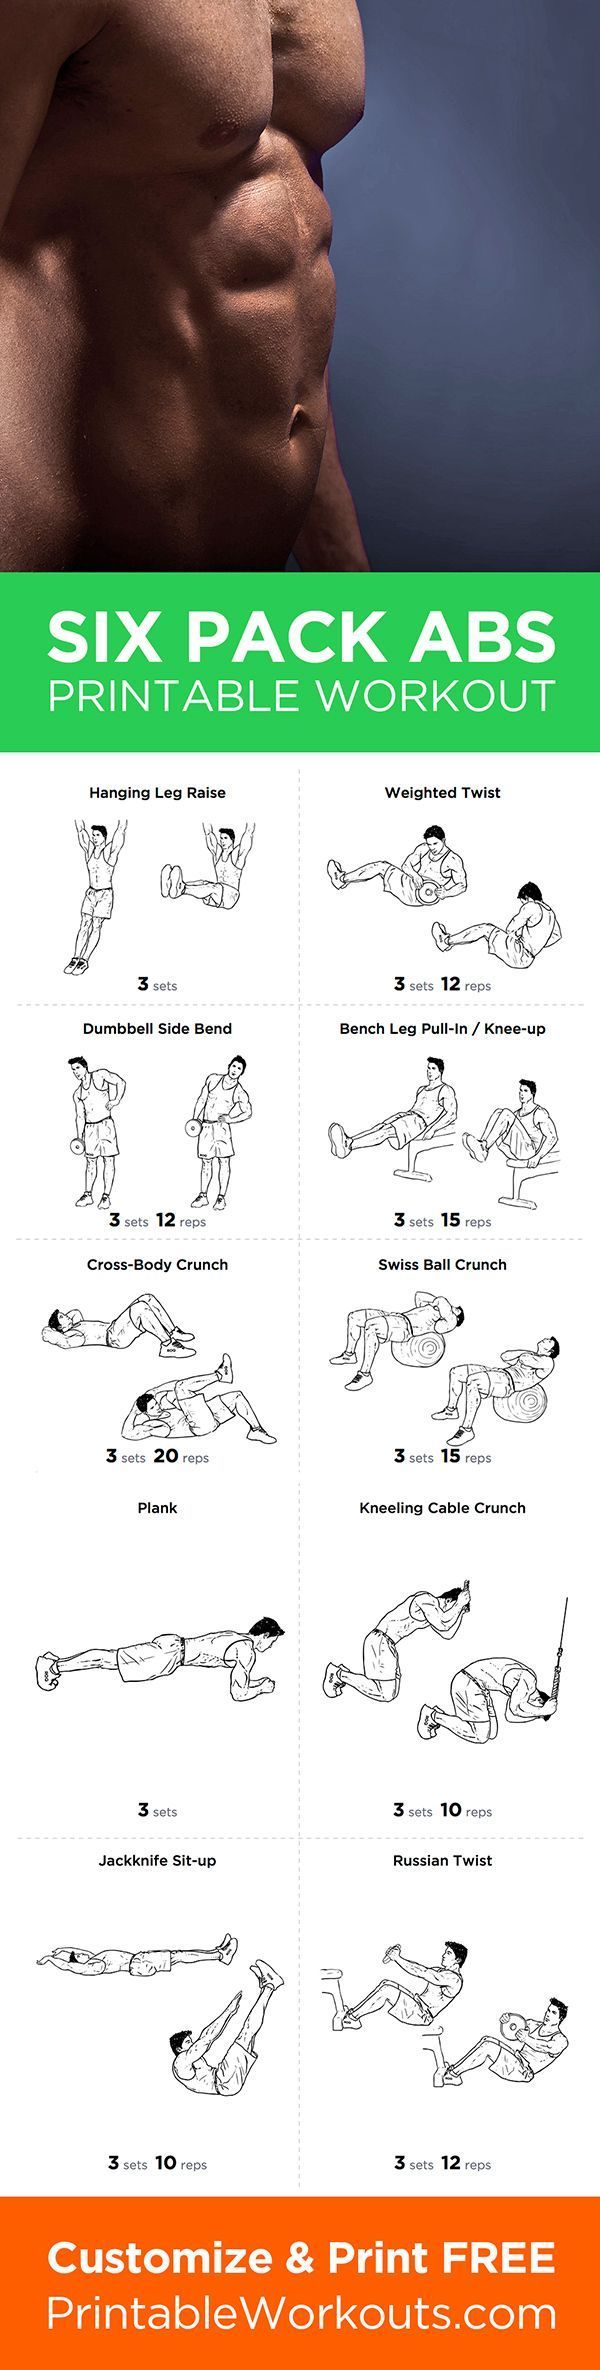 Six-pack abs, gain muscle or weight loss, these workout plan is great for women. Mehr zum Abnehmen gibt es auf interessante-dinge.de